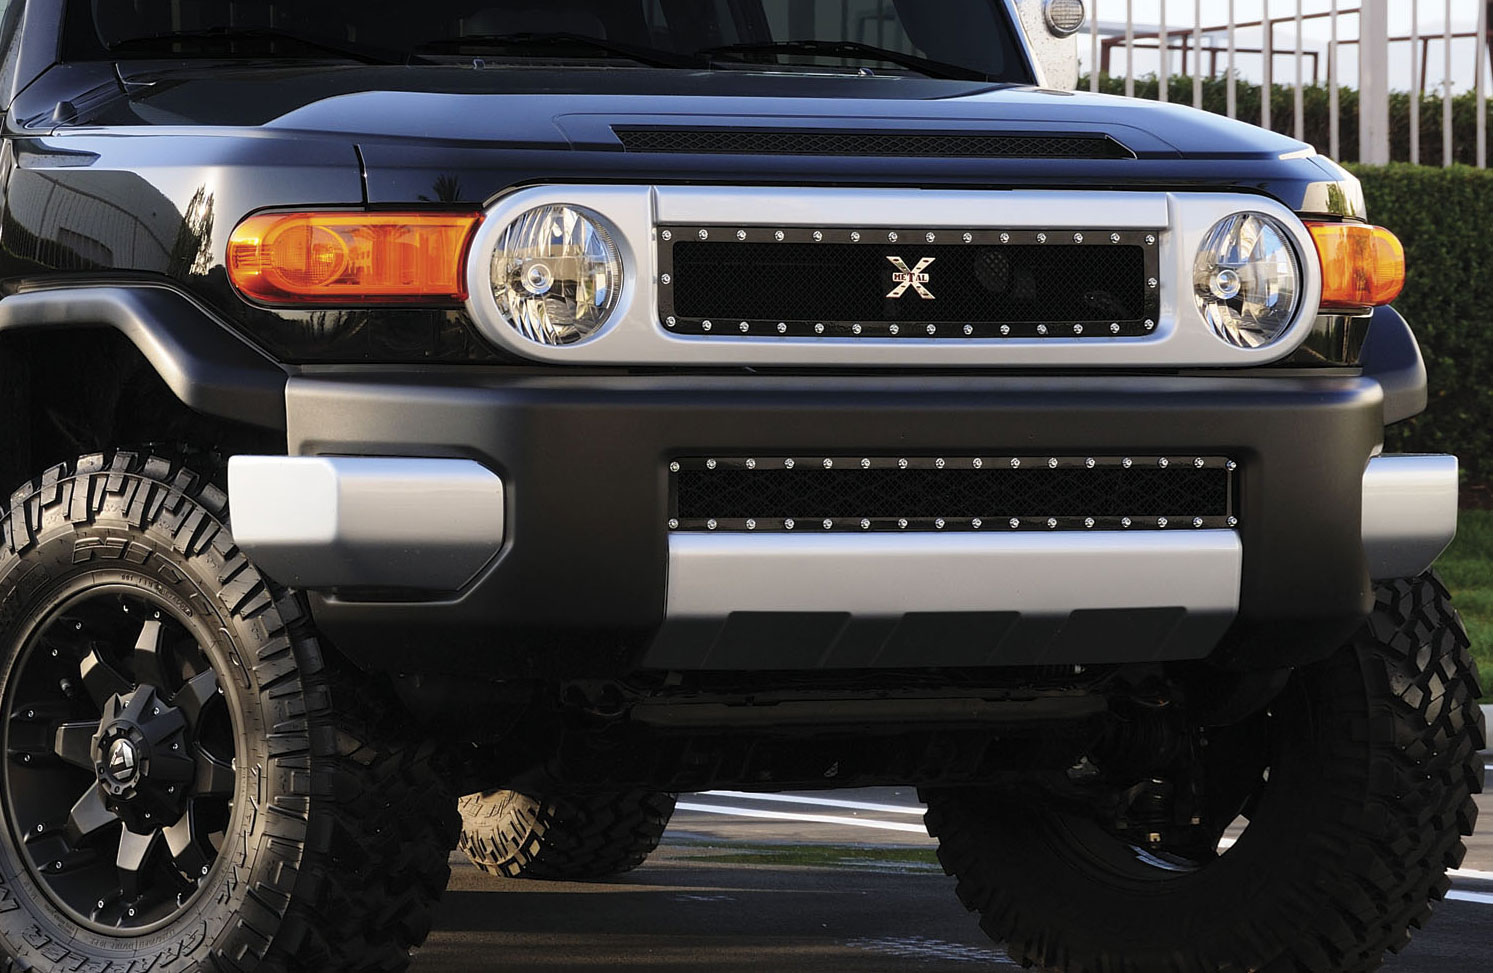 T-Rex Toyota FJ Cruiser - X-Metal Series - Main Grille - Black 2007+